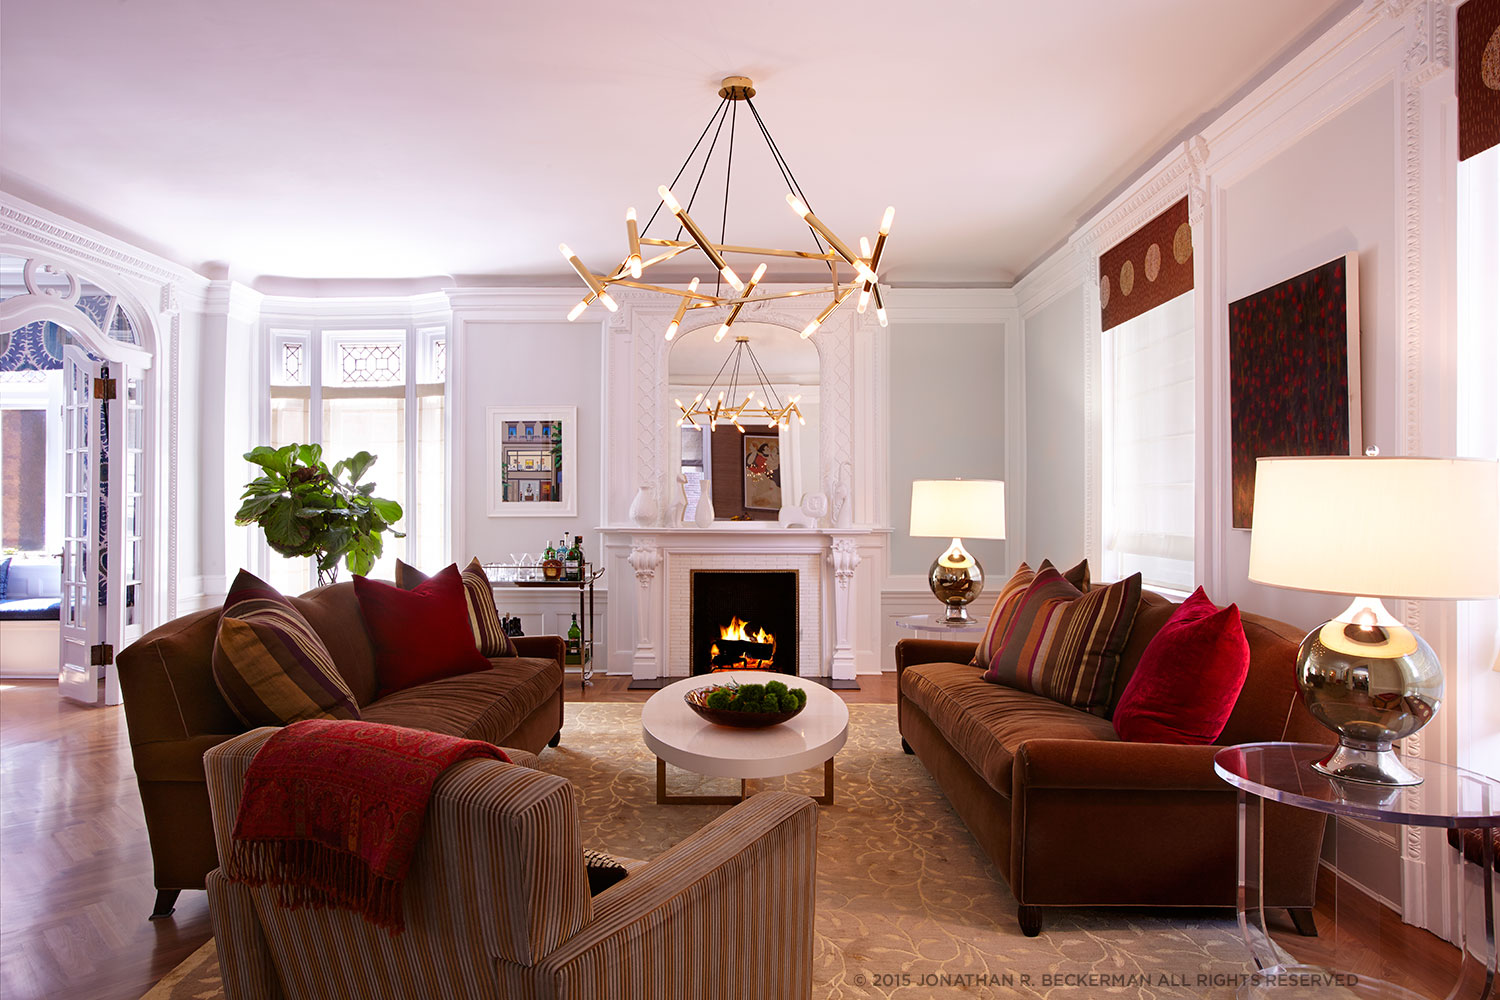 Evelyn Benatar New York Interior Design Living Room The Dorliton